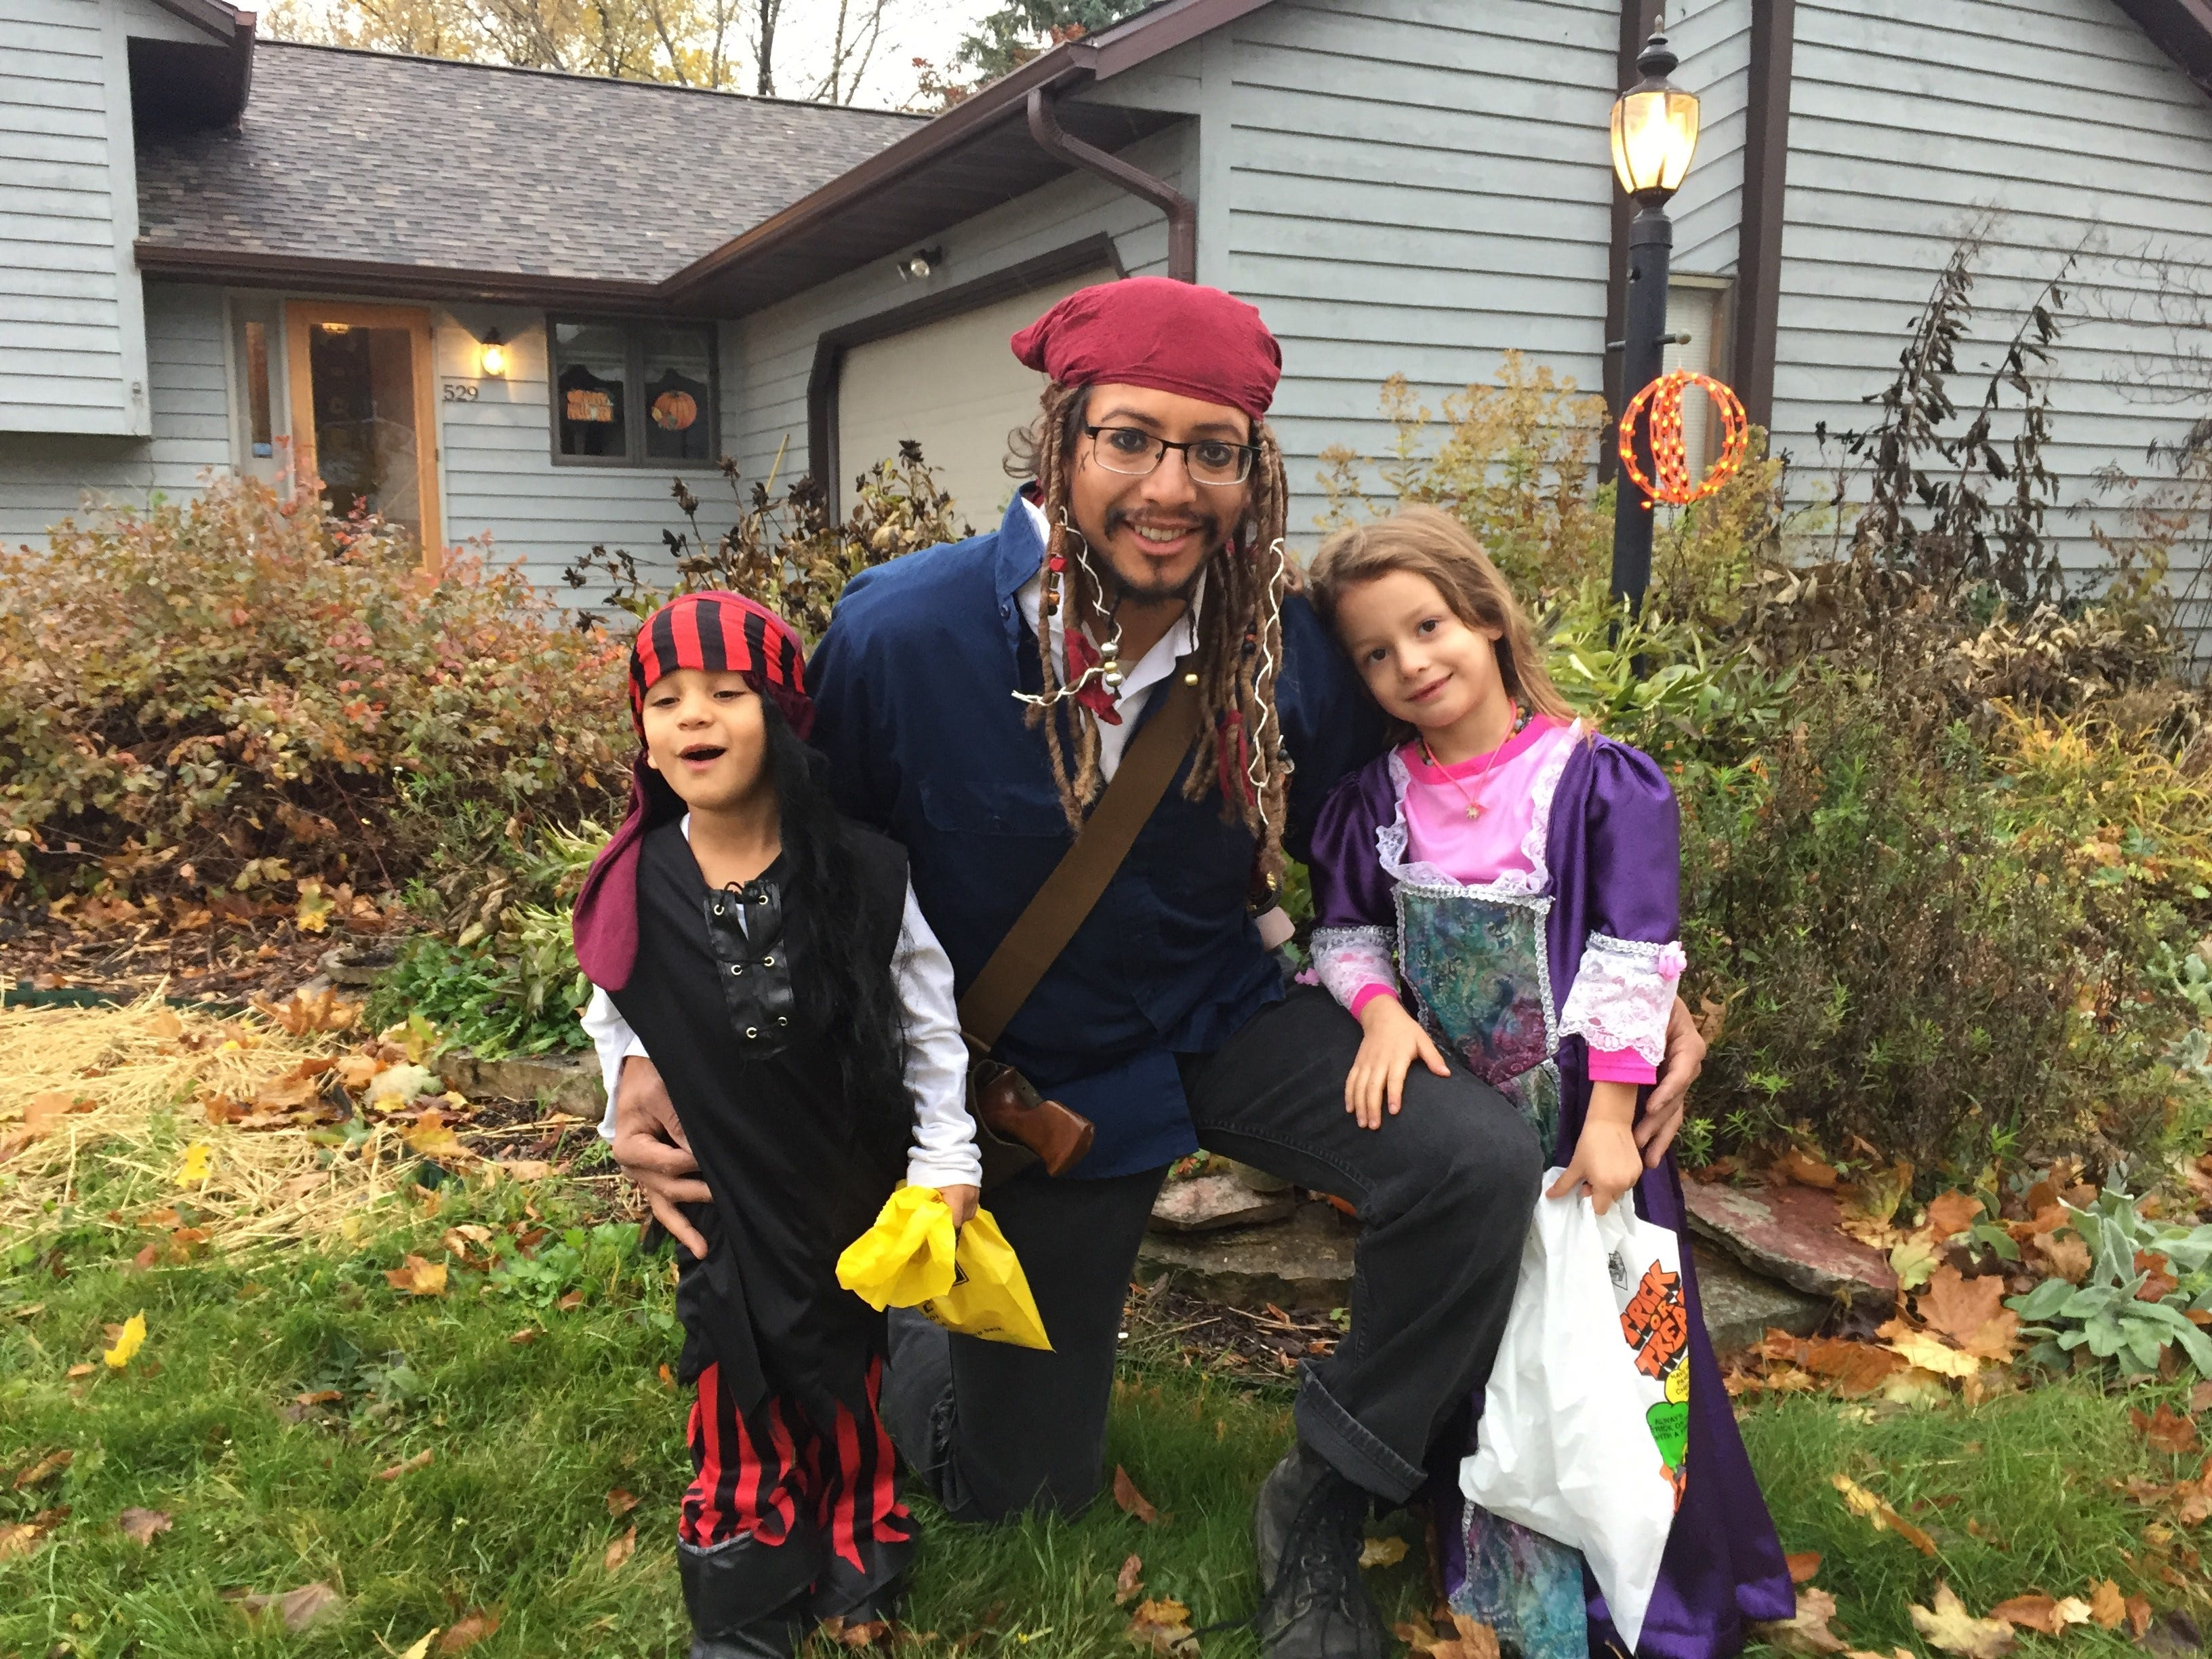 Willington Cowan, 32, Jameson Cowan,  4, and Sophie Cowan, 5, all dressed up for Halloween. Sophie's Grandma Barb designed and sewed her costume. Willington grew up in Fond du Lac, but currently lives with his family in Janesville.